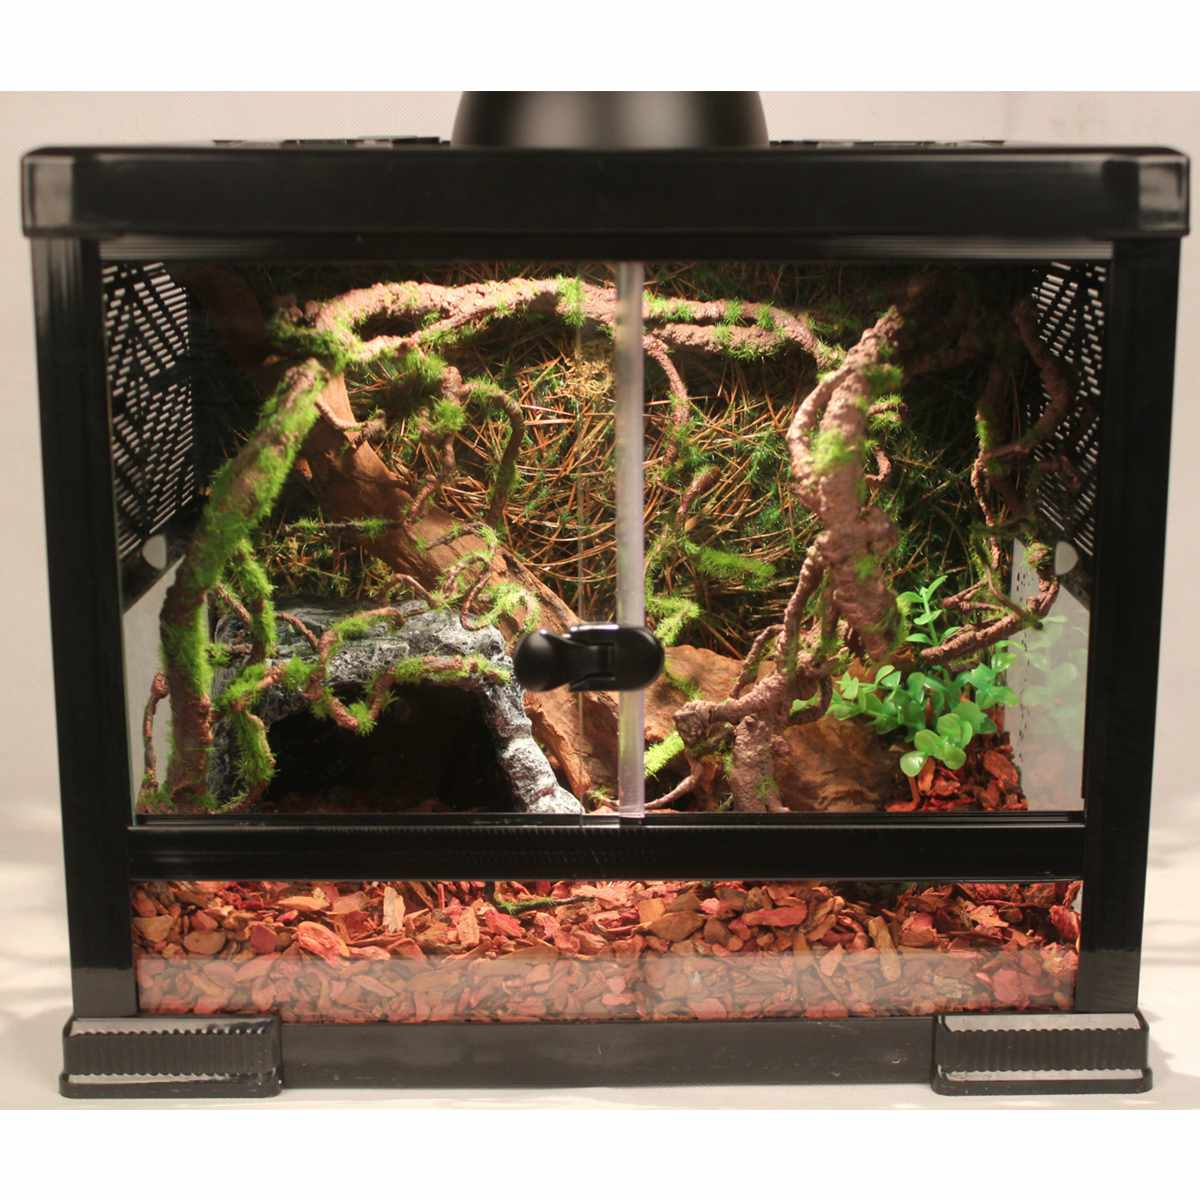 120cm Reptiles Box Tank Vine Climber Jungle Forest Bend Artificial Branch Terrarium Cage Decoration Reptiles Habitat Ornament